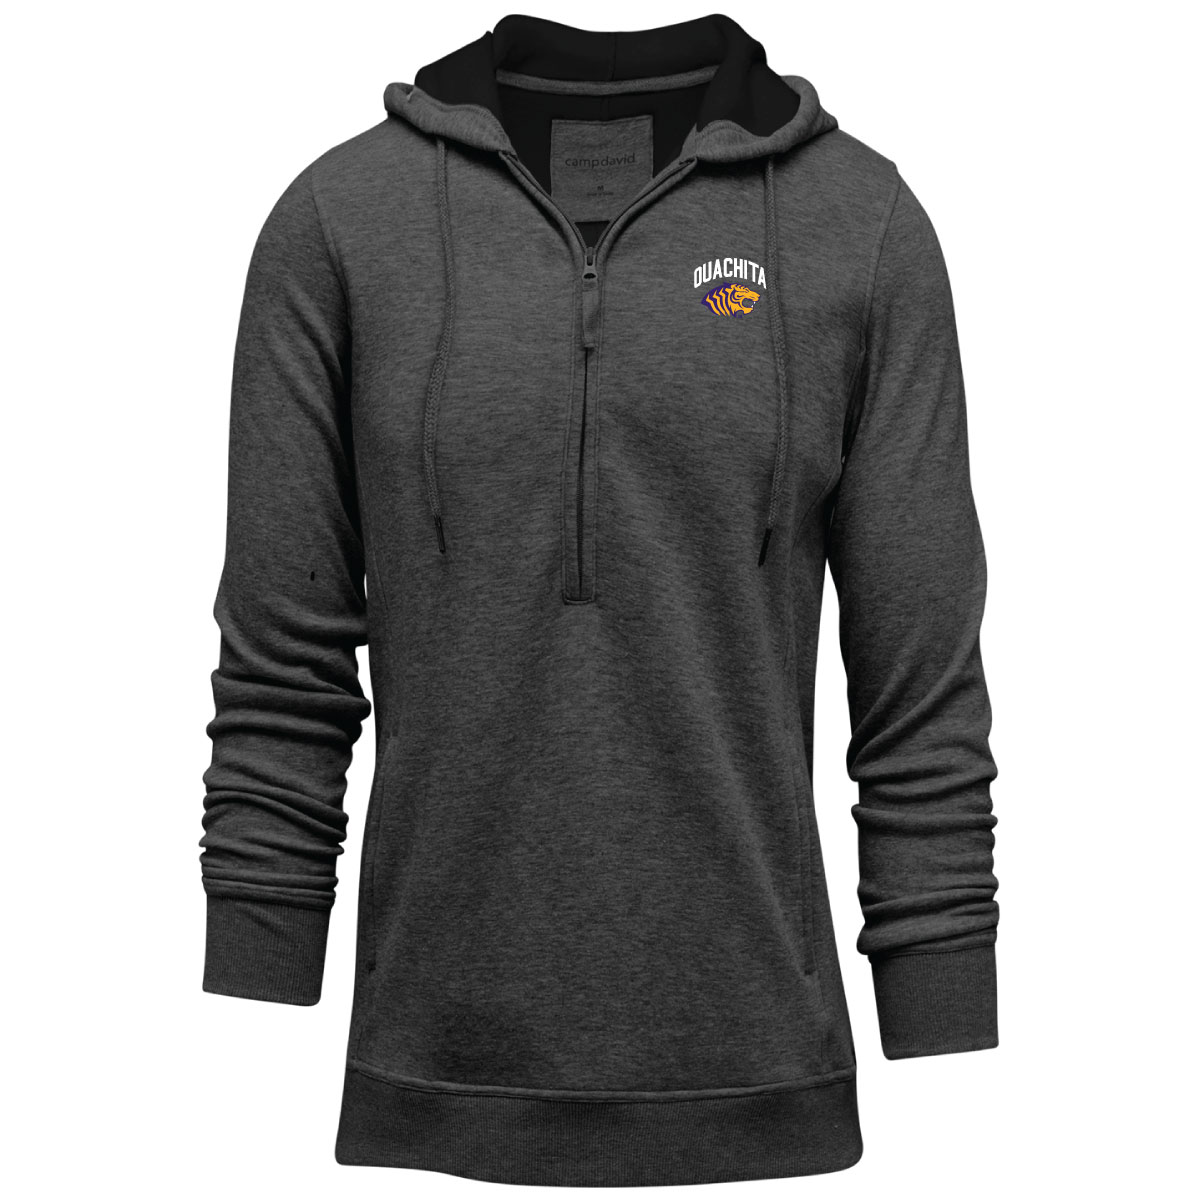 OUACHITA 1/2 ZIP FLEECE PULLOVER